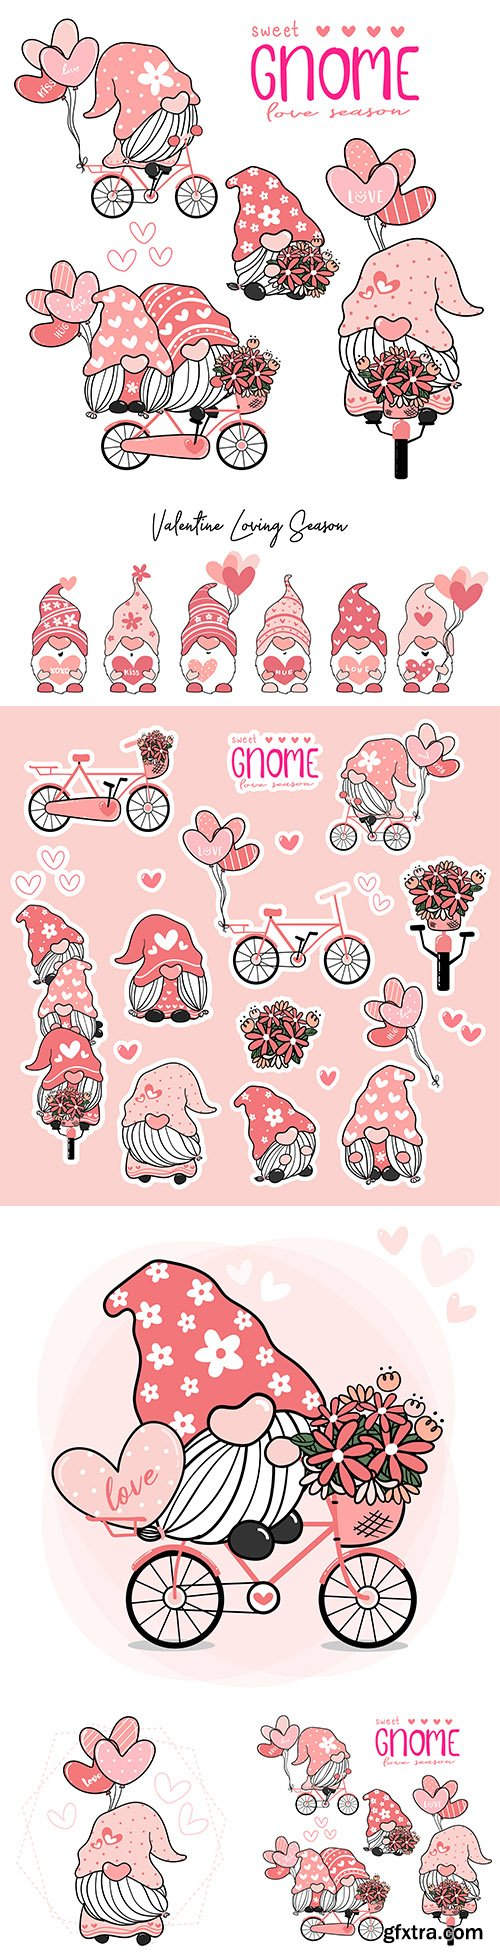 Cute valentine gnome illustration and label for printing